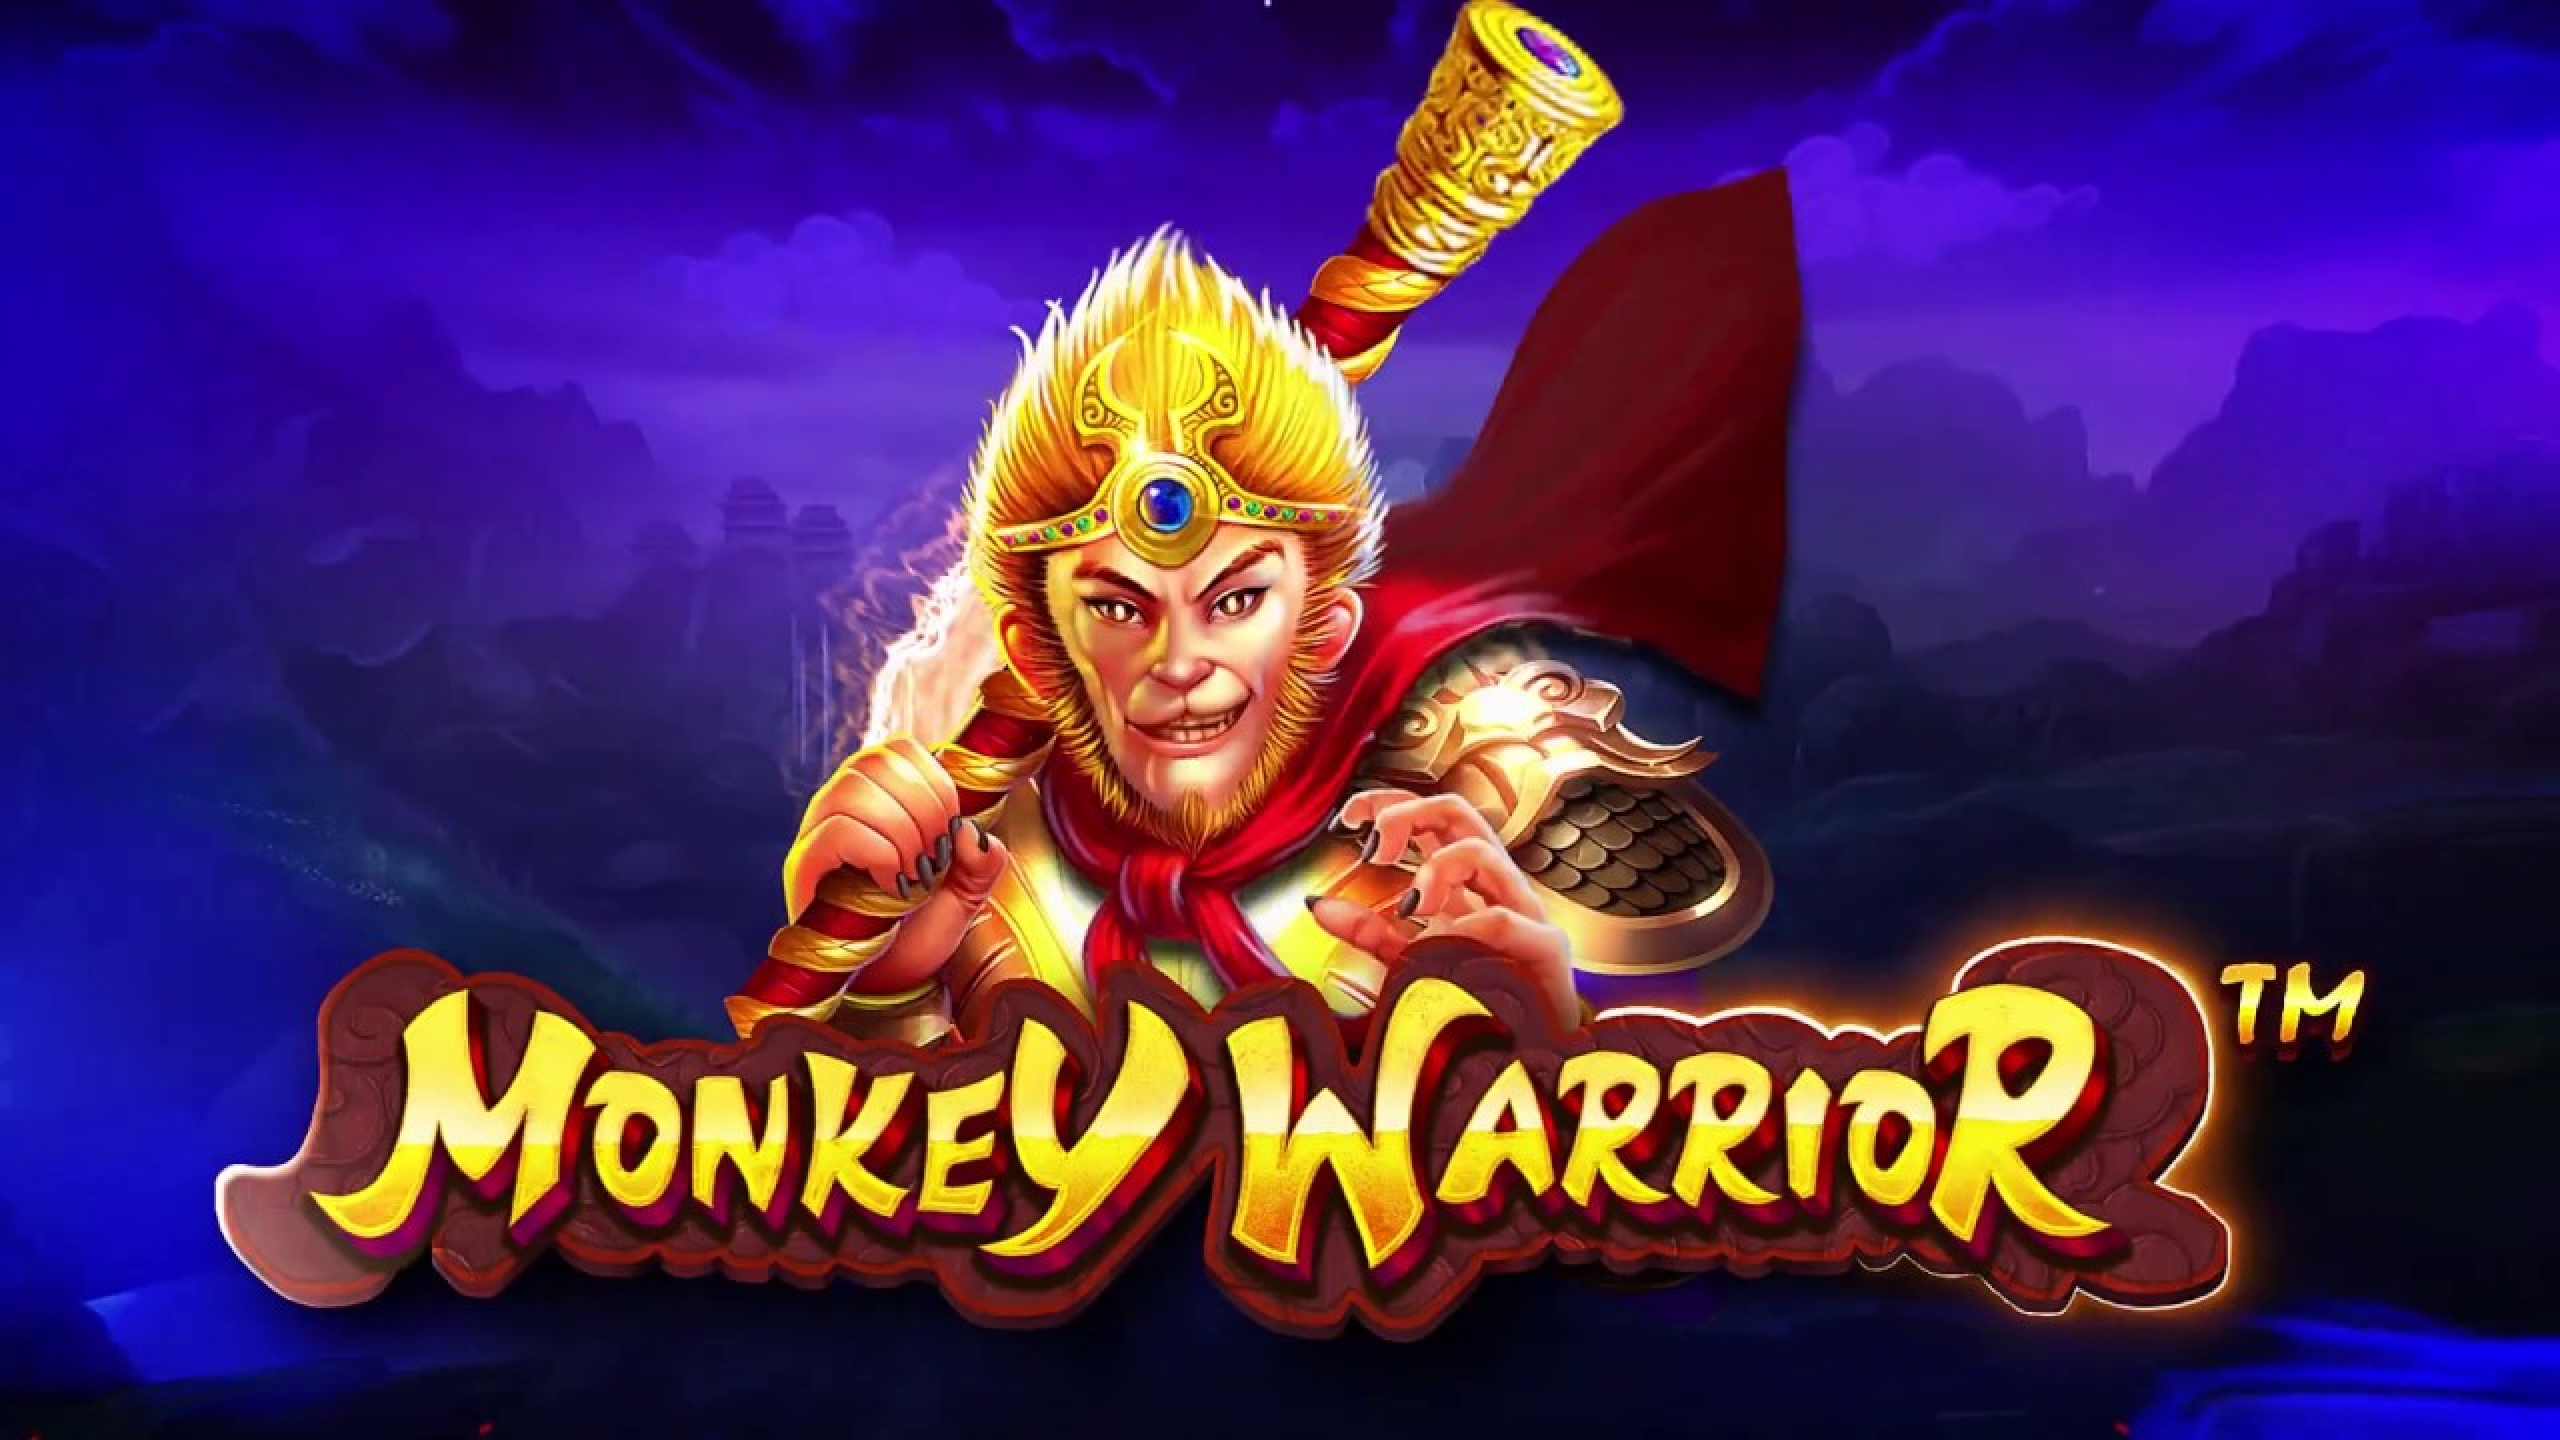 The Monkey Warrior Online Slot Demo Game by Pragmatic Play